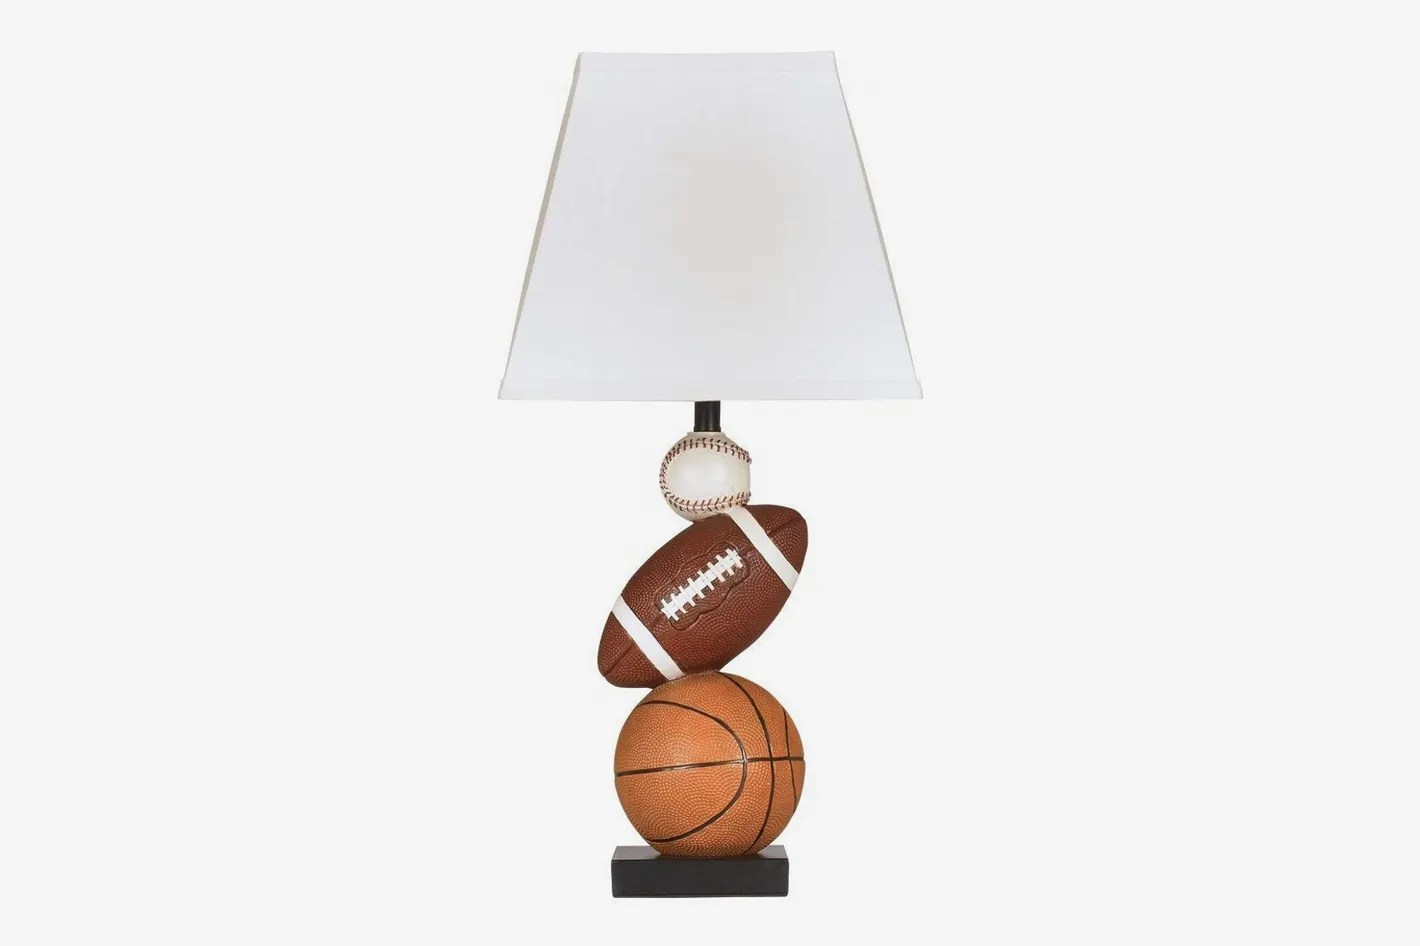 Cool Bedside Lamps Ashley Furniture Signature Design Sports Table Lamp